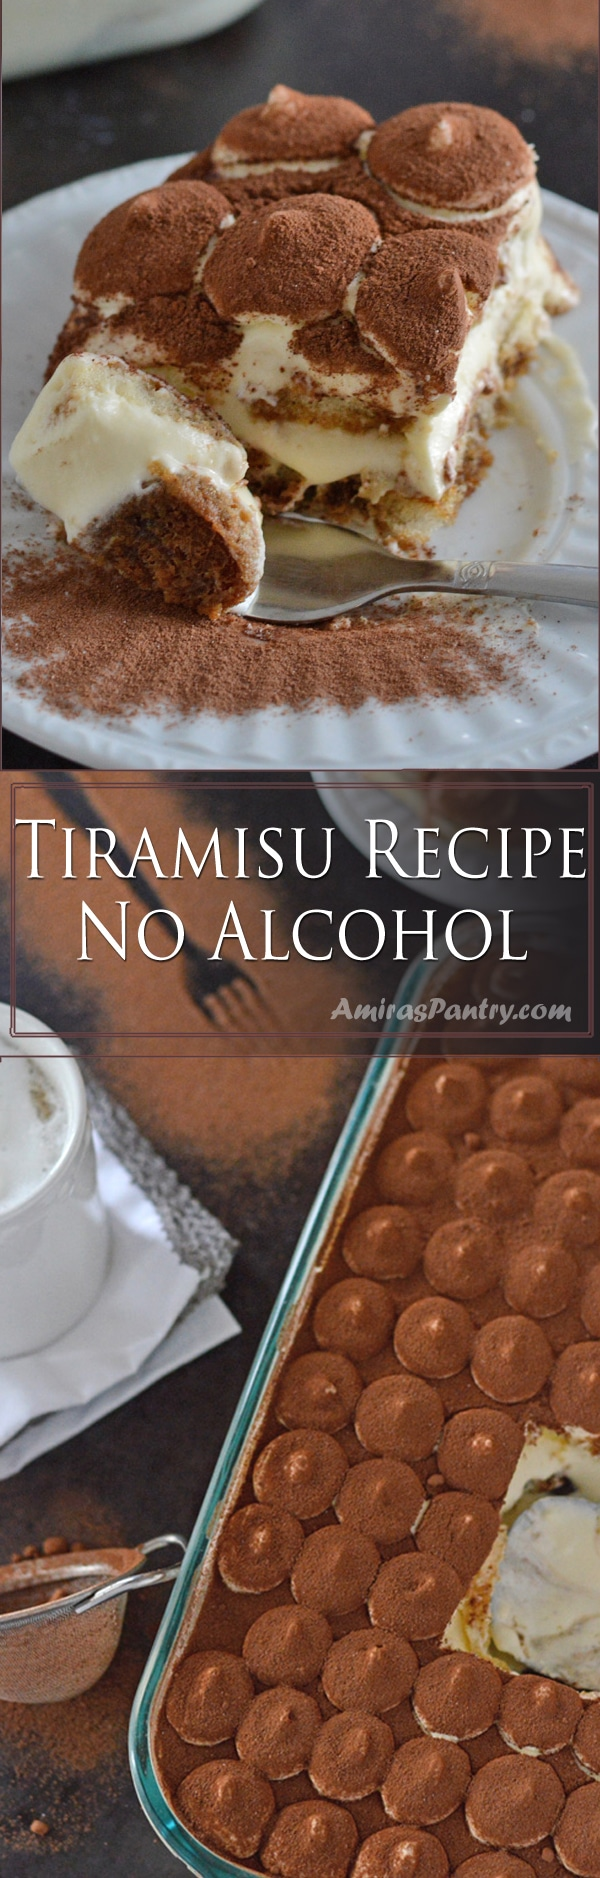 Tiramisu Cake Recipe No Alcohol